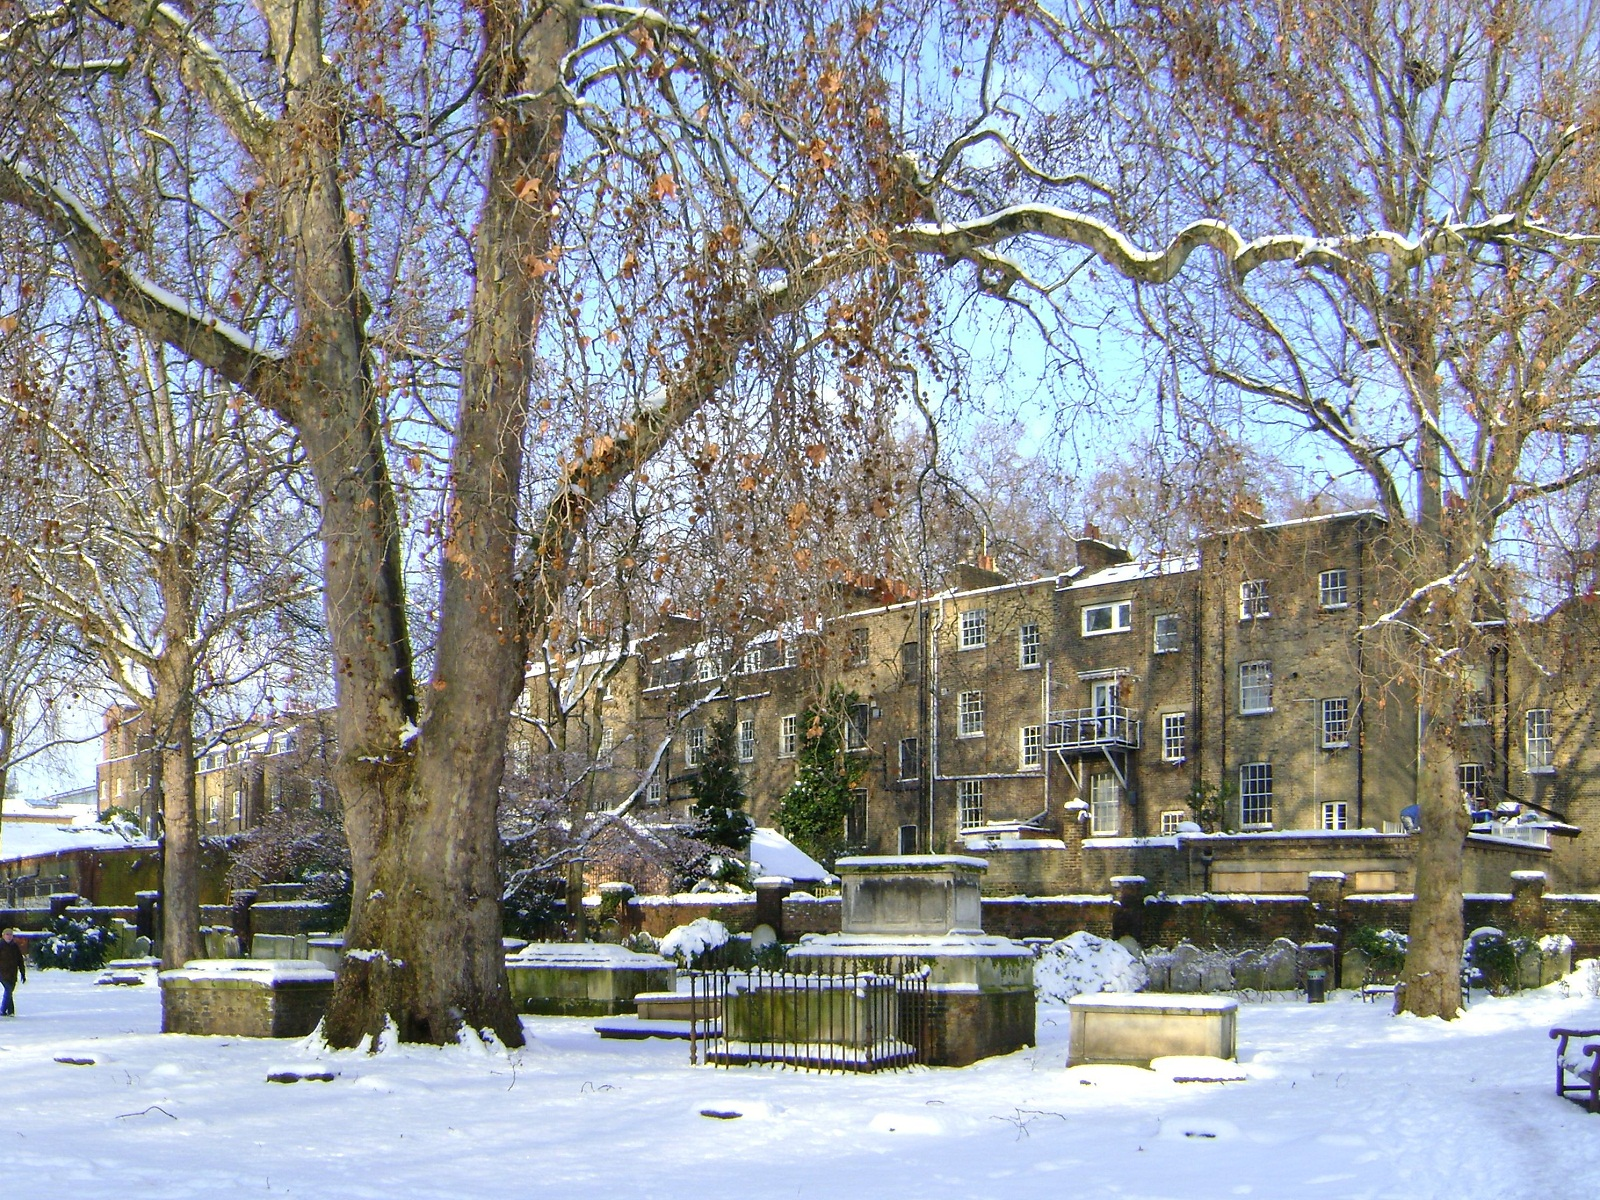 London Architecture, United Kingdom, St George Gardens at winter